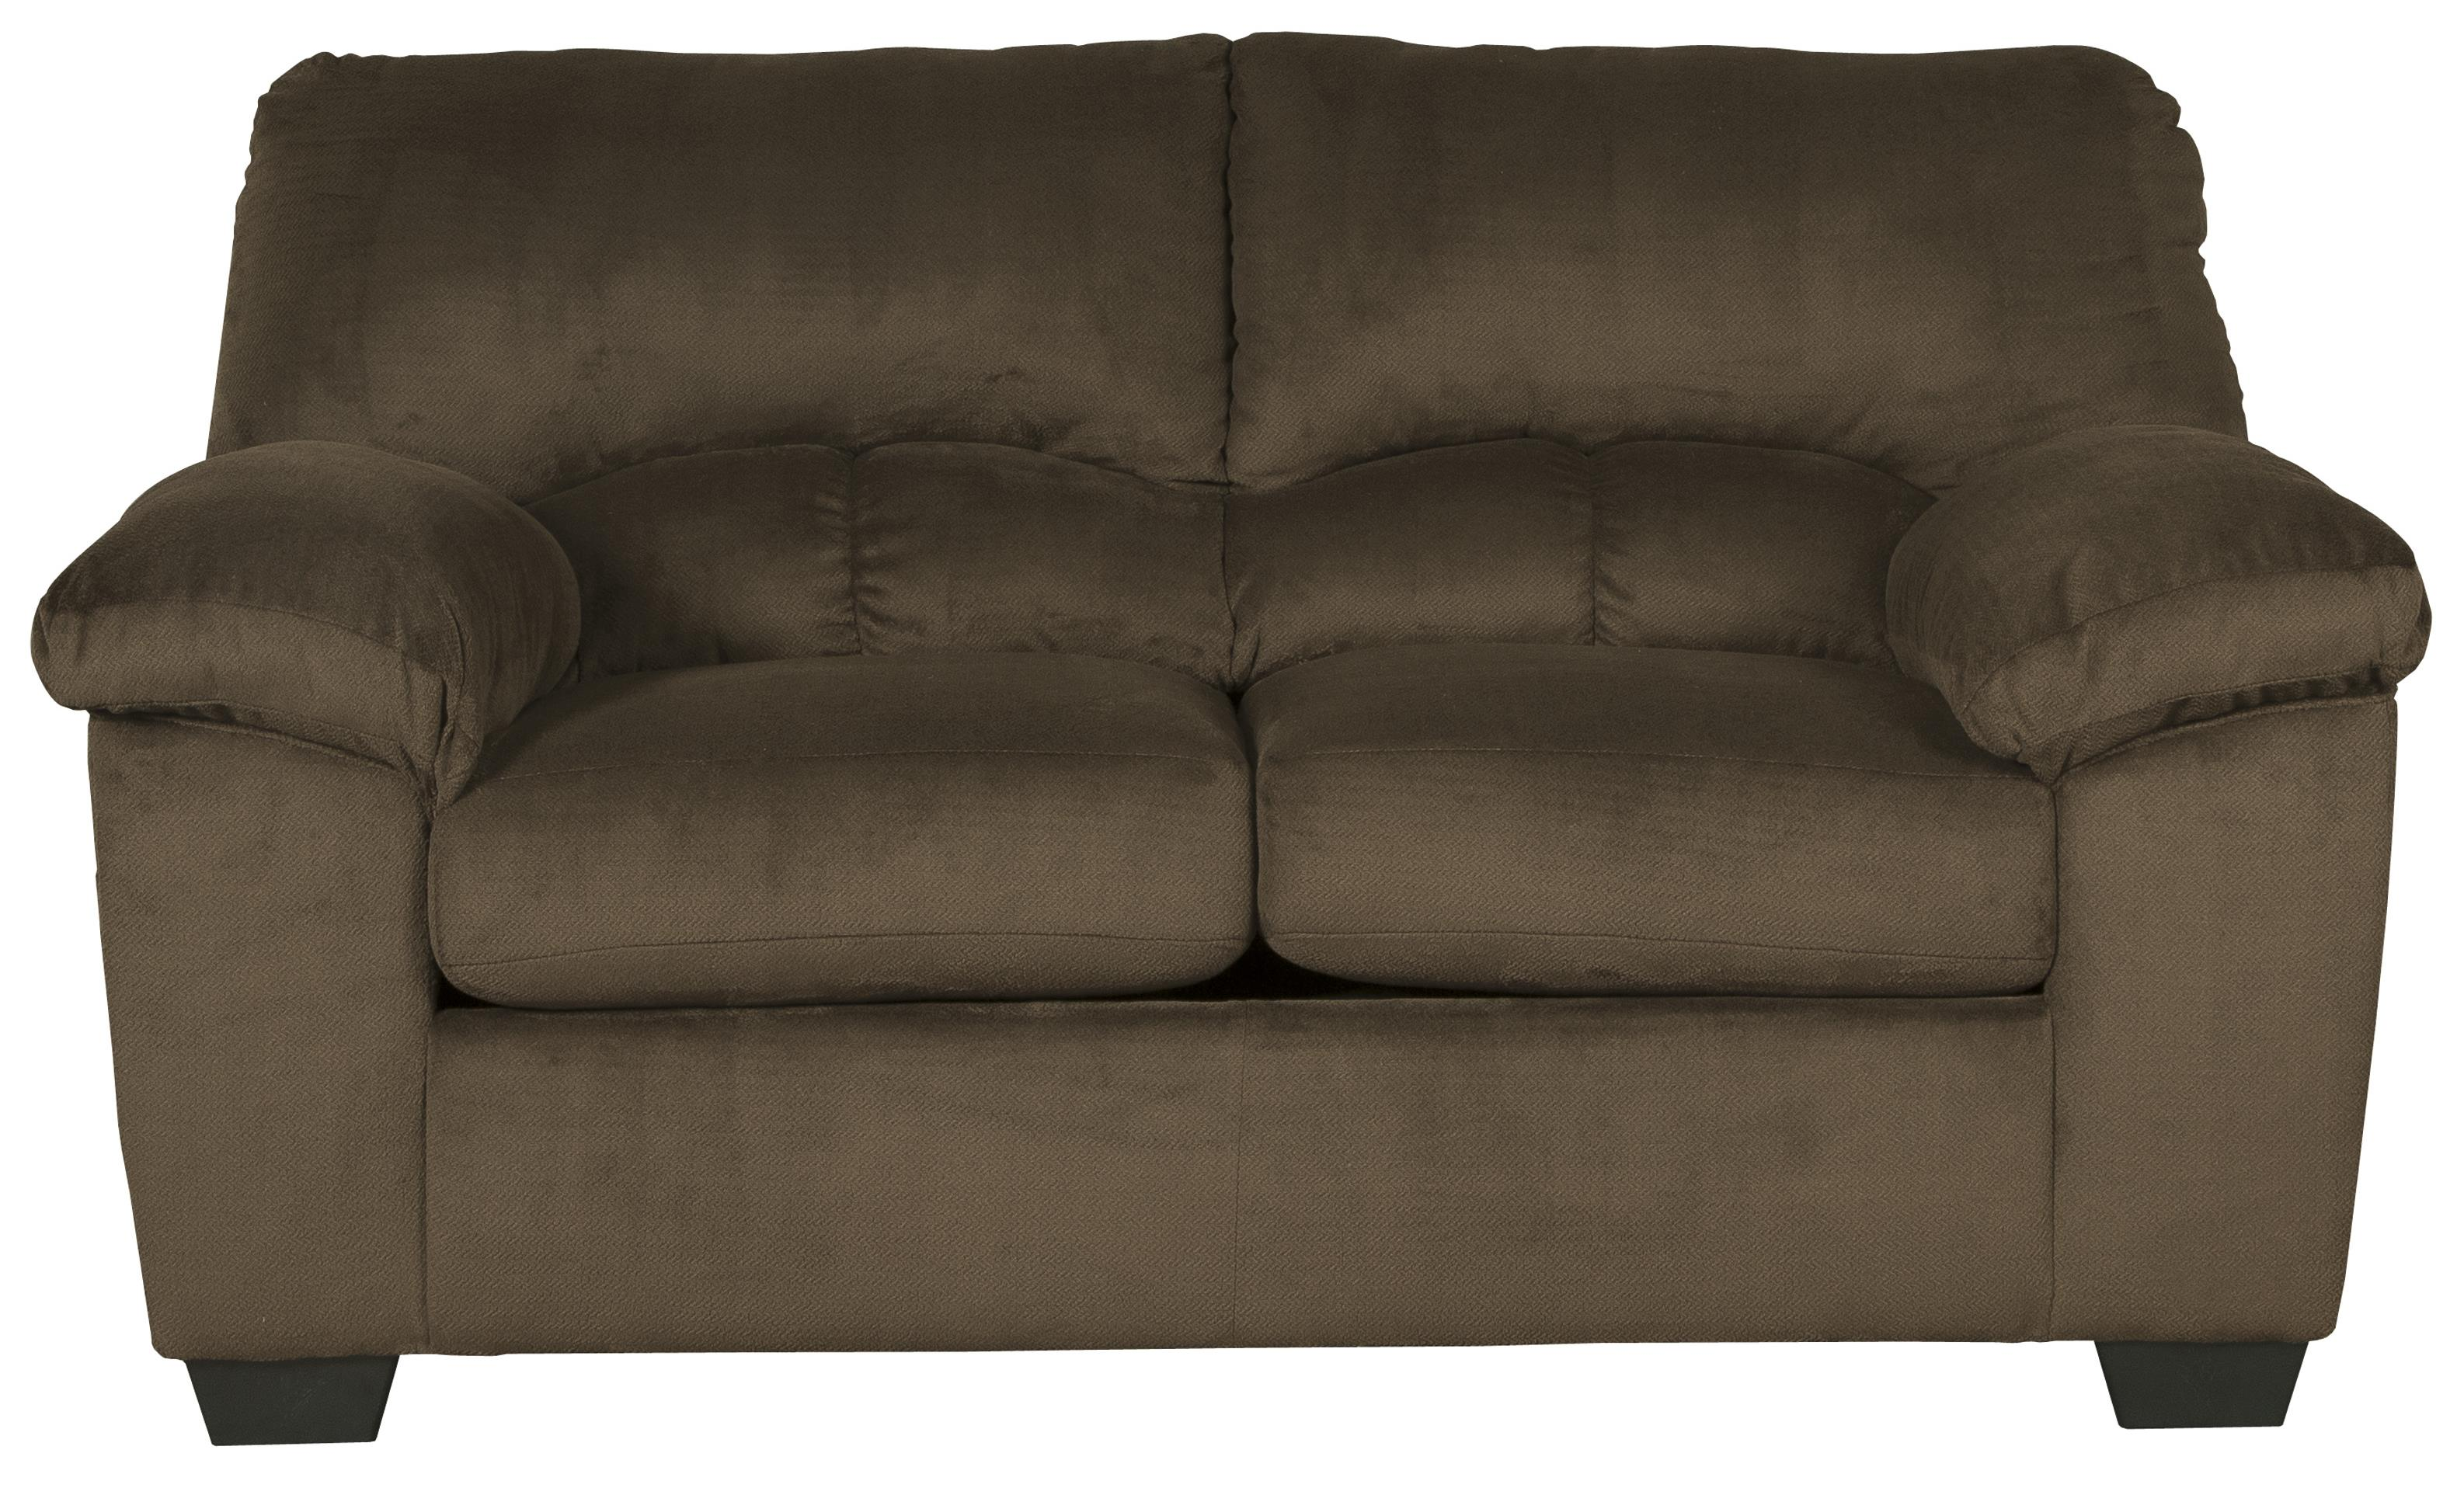 Signature Design by Ashley Dailey Loveseat - Item Number: 9540335